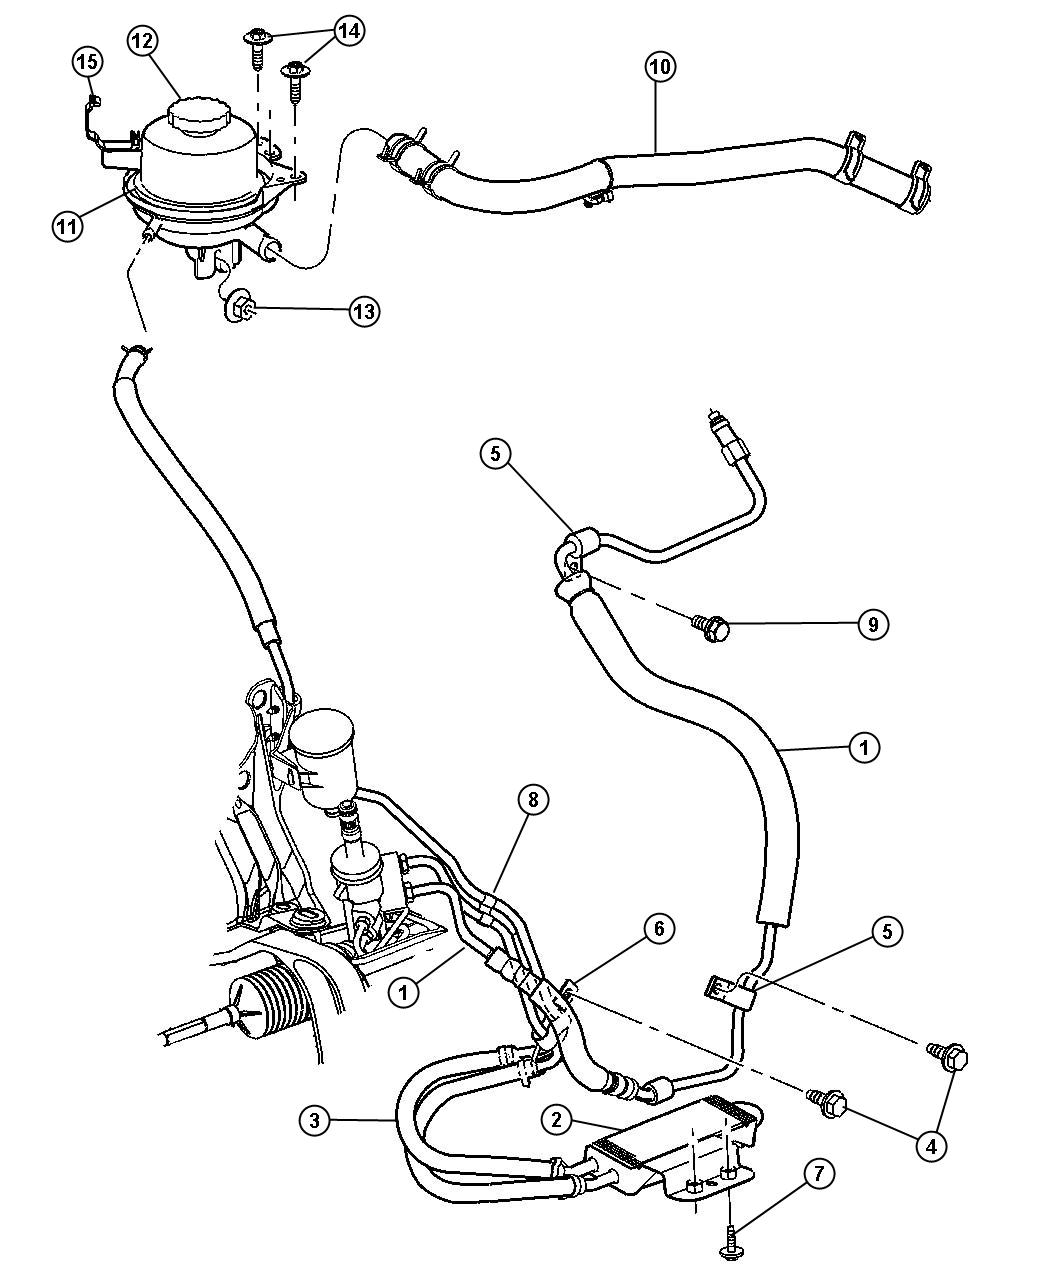 Chrysler Town & Country Line. Power steering return